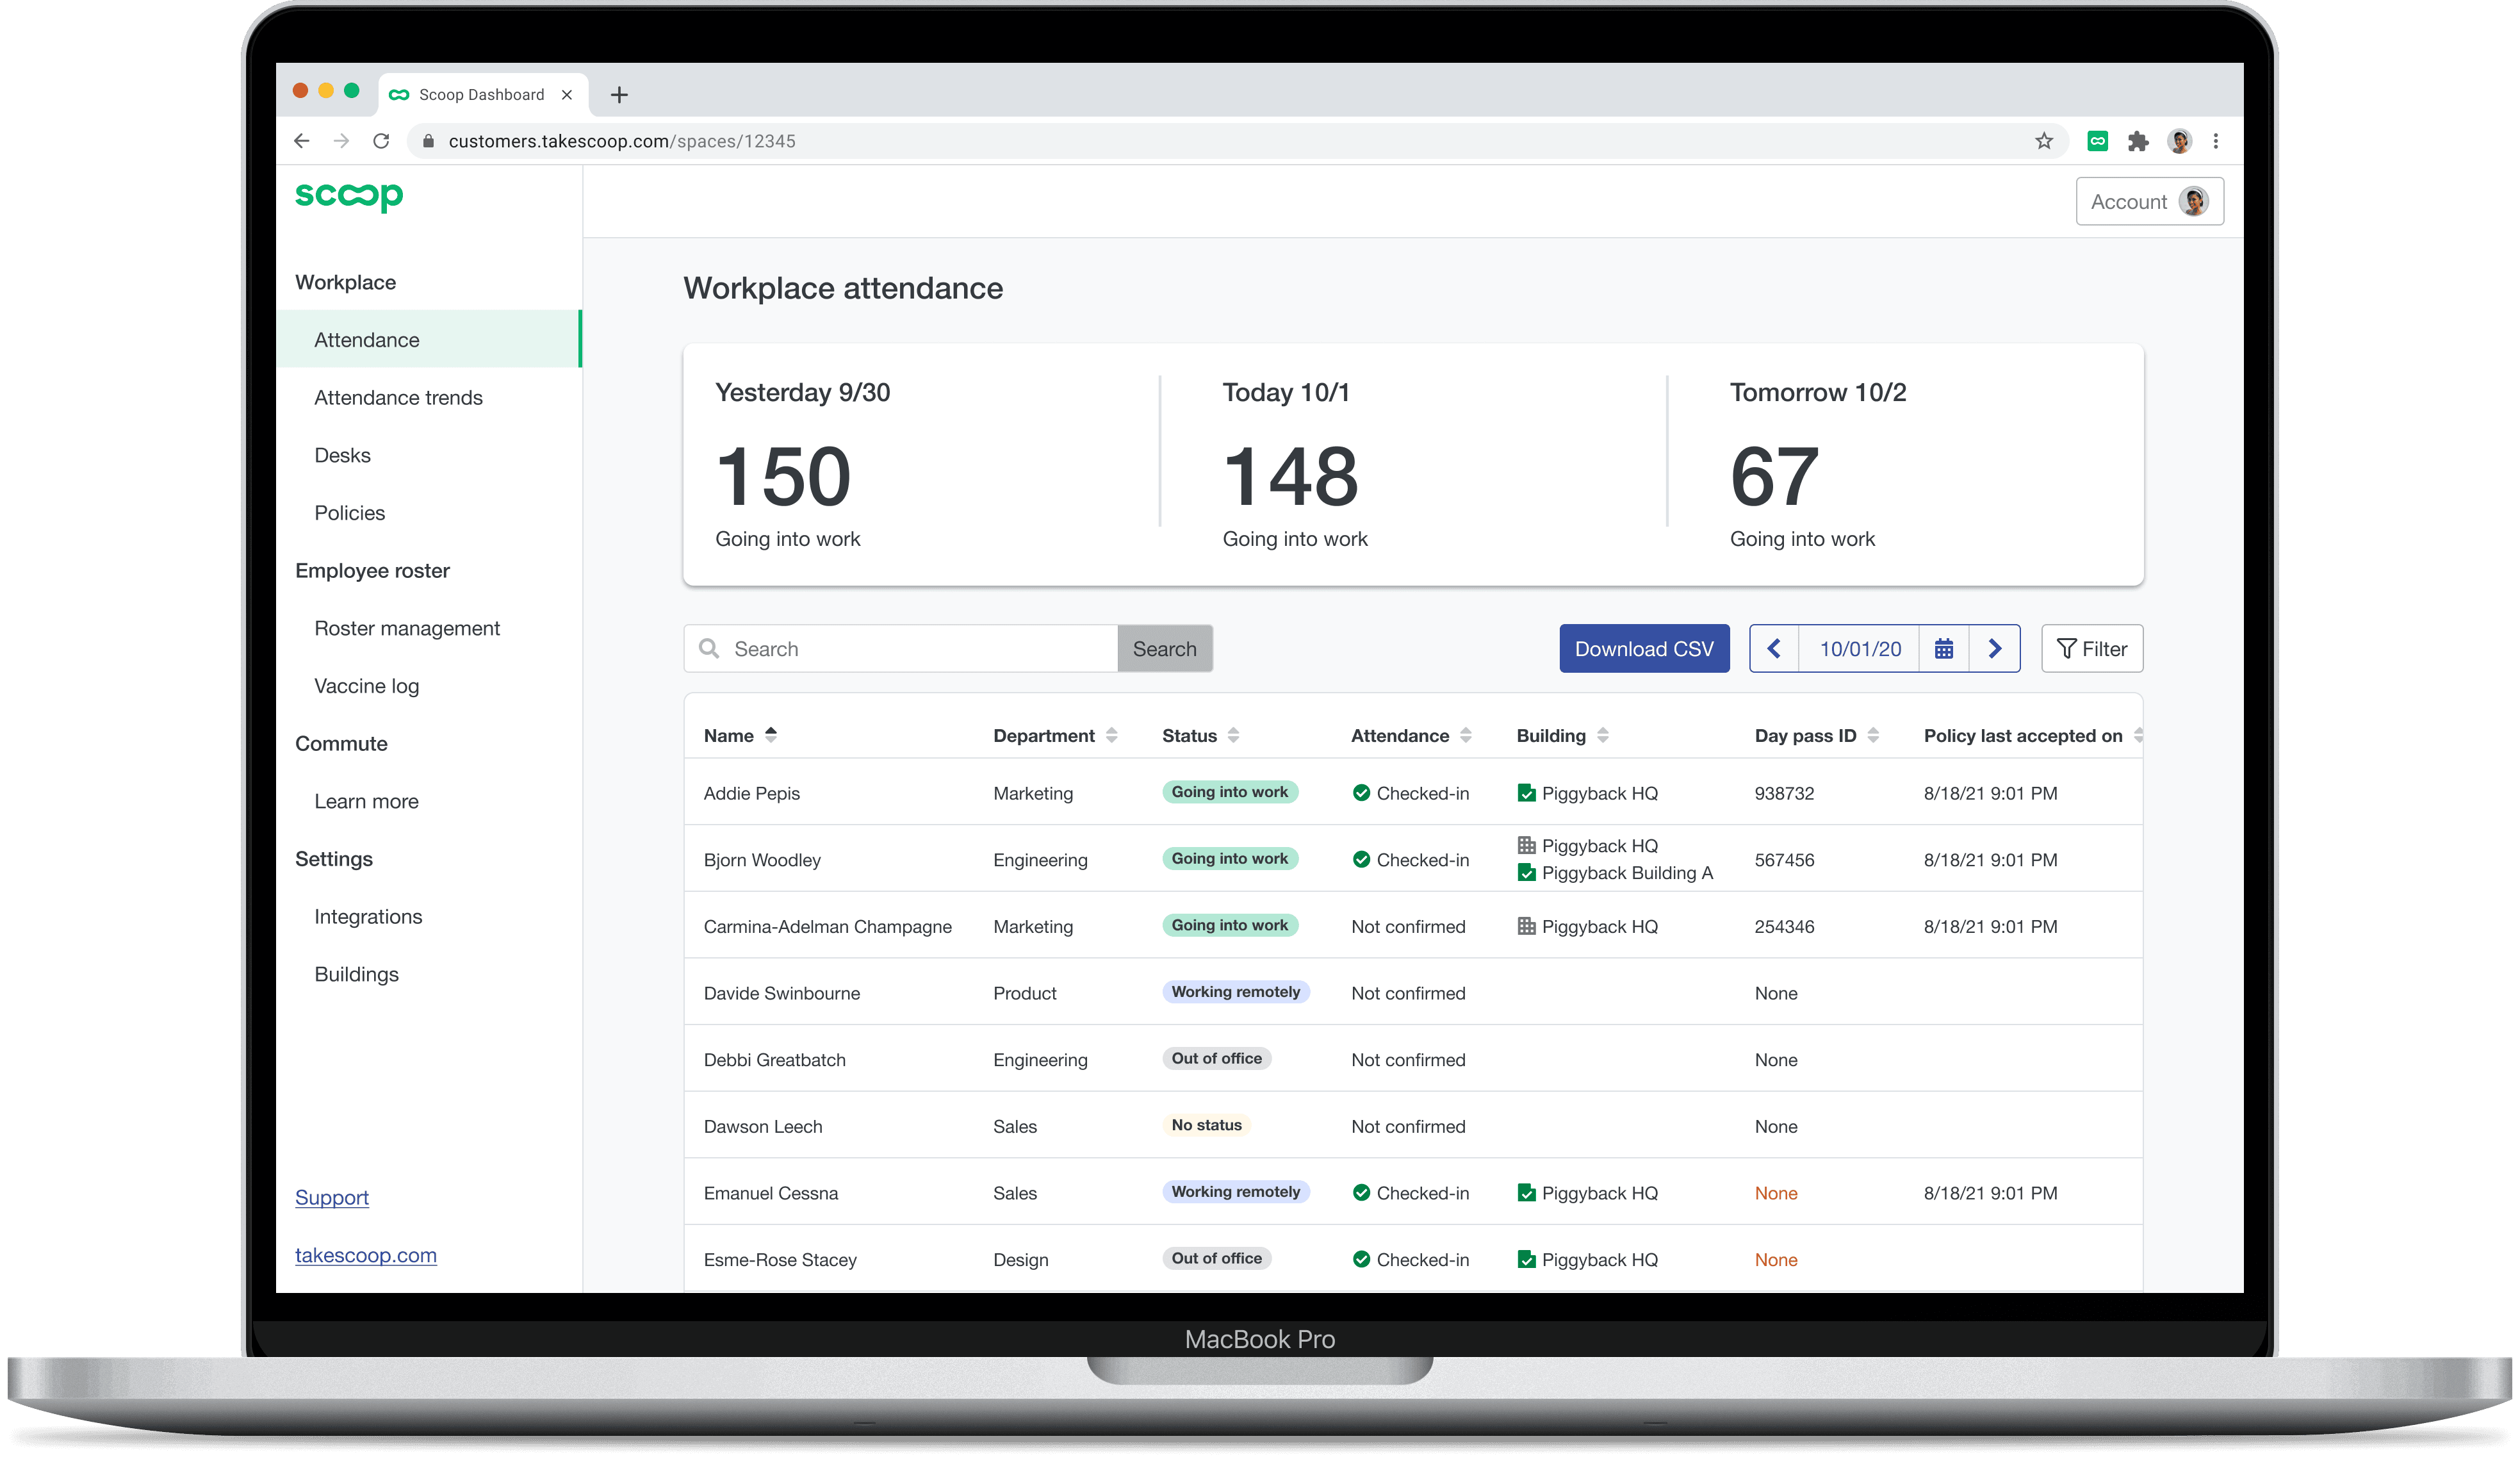 A screenshot of the Scoop attendance table where you can break down employee attendance data by status, building and/or by confirmed attendance, so you can hone in on what matters most at your workplace.